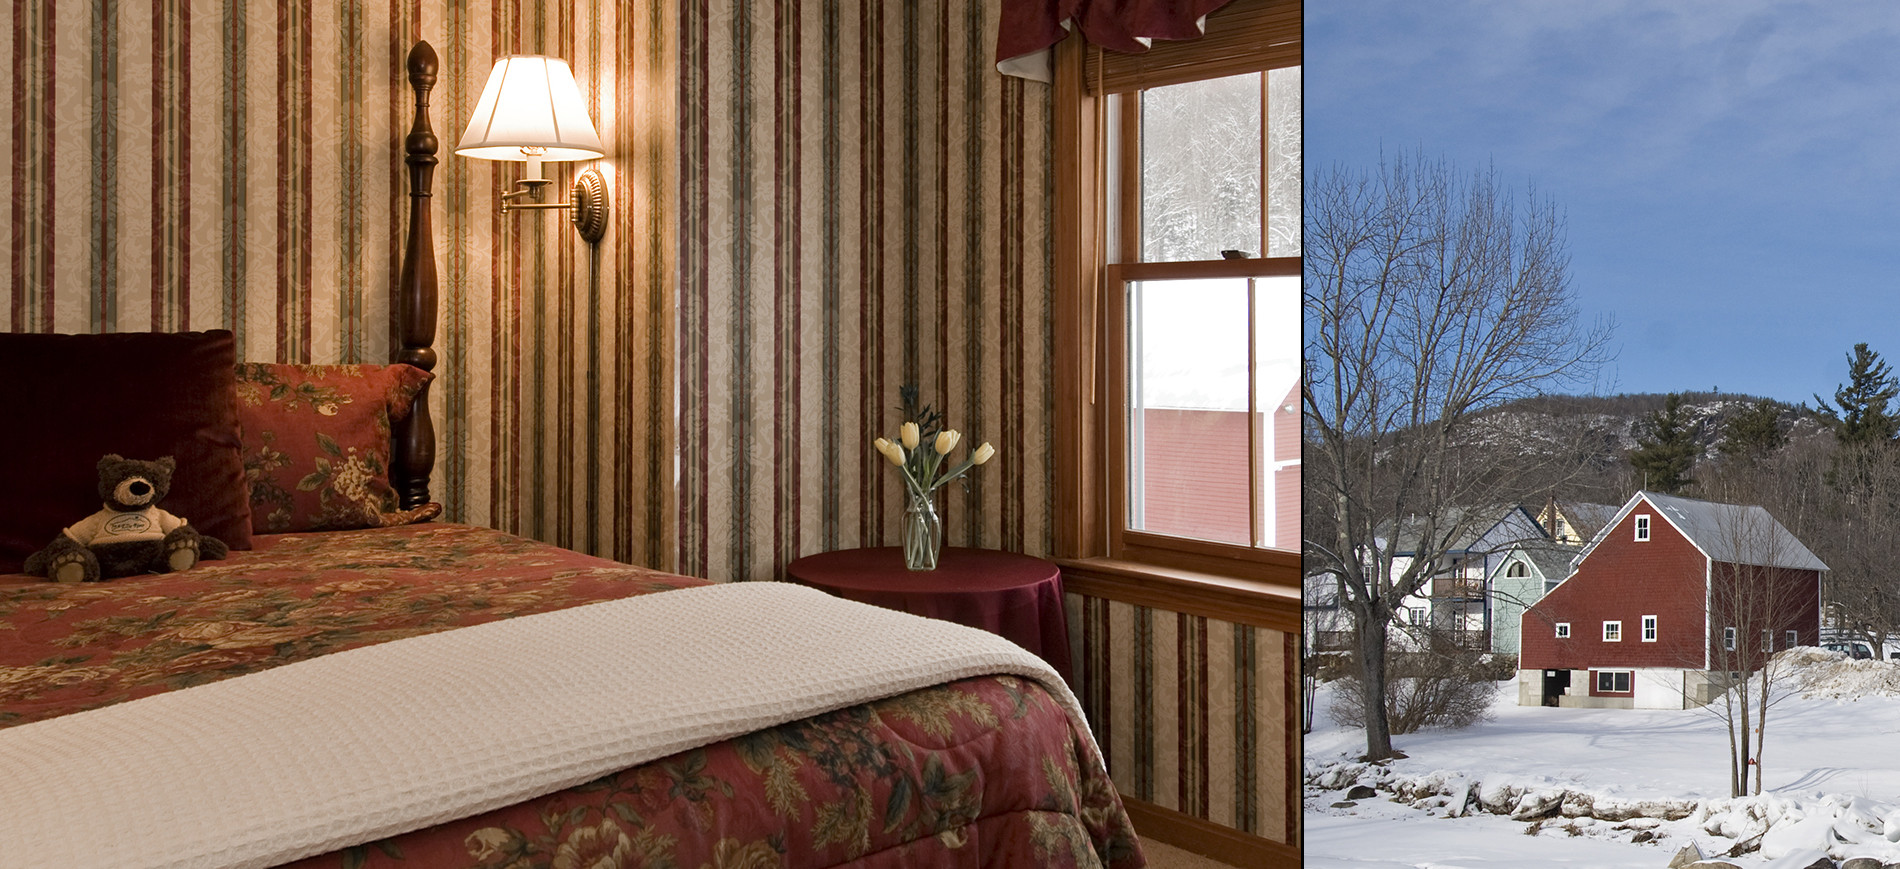 Guest room with burgundy, green & gold striped wallpaper, queen bed with print bedding, window view of barn, burgundy wing chair, exterior of red barn in snow